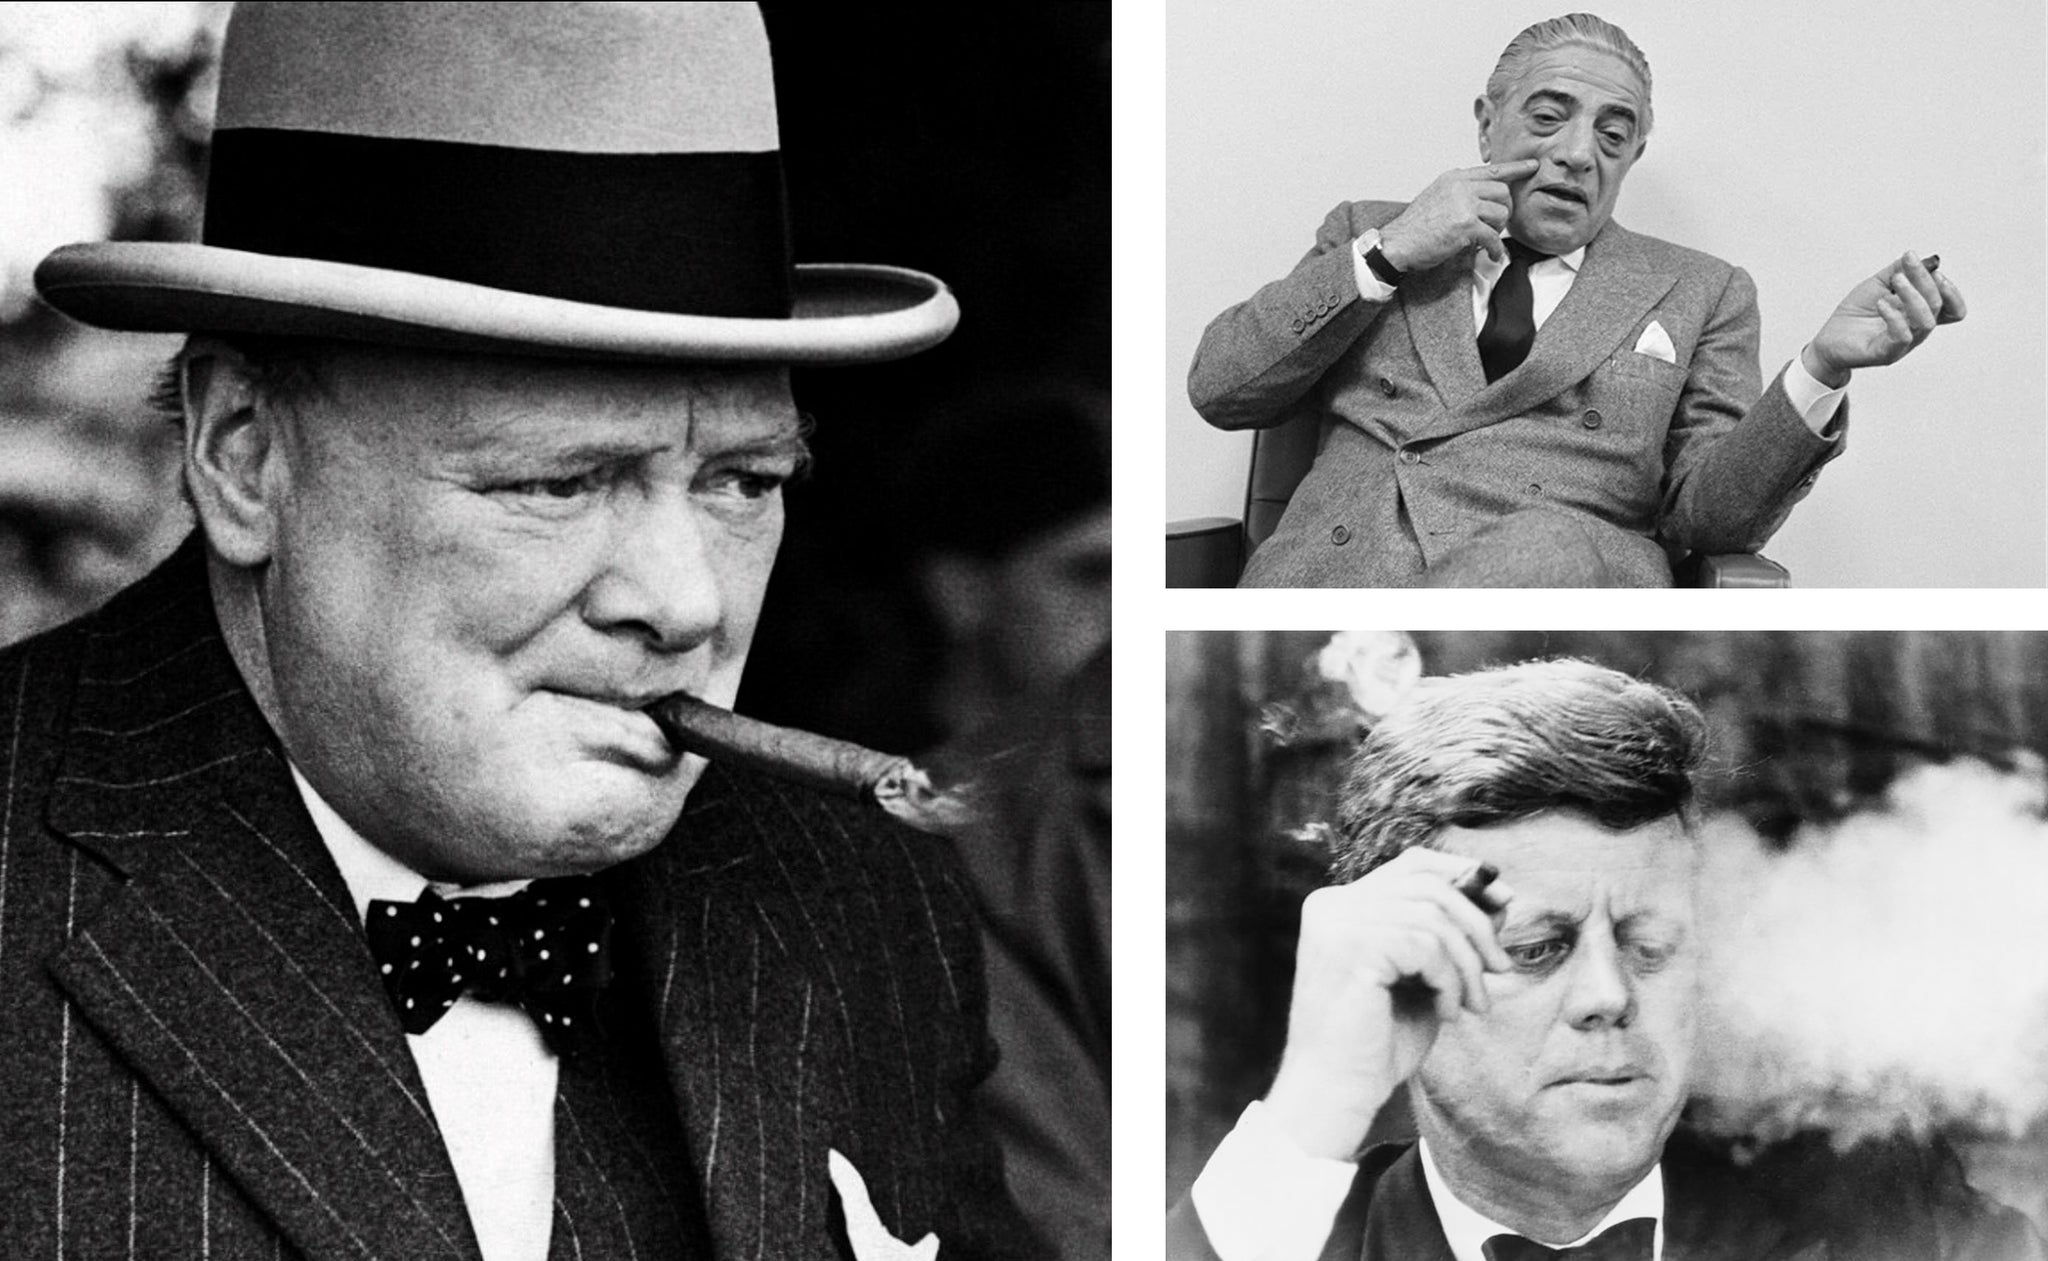 winston churchill aristotle onnasis and john f kennedy smoking cuban cigars egm cigars